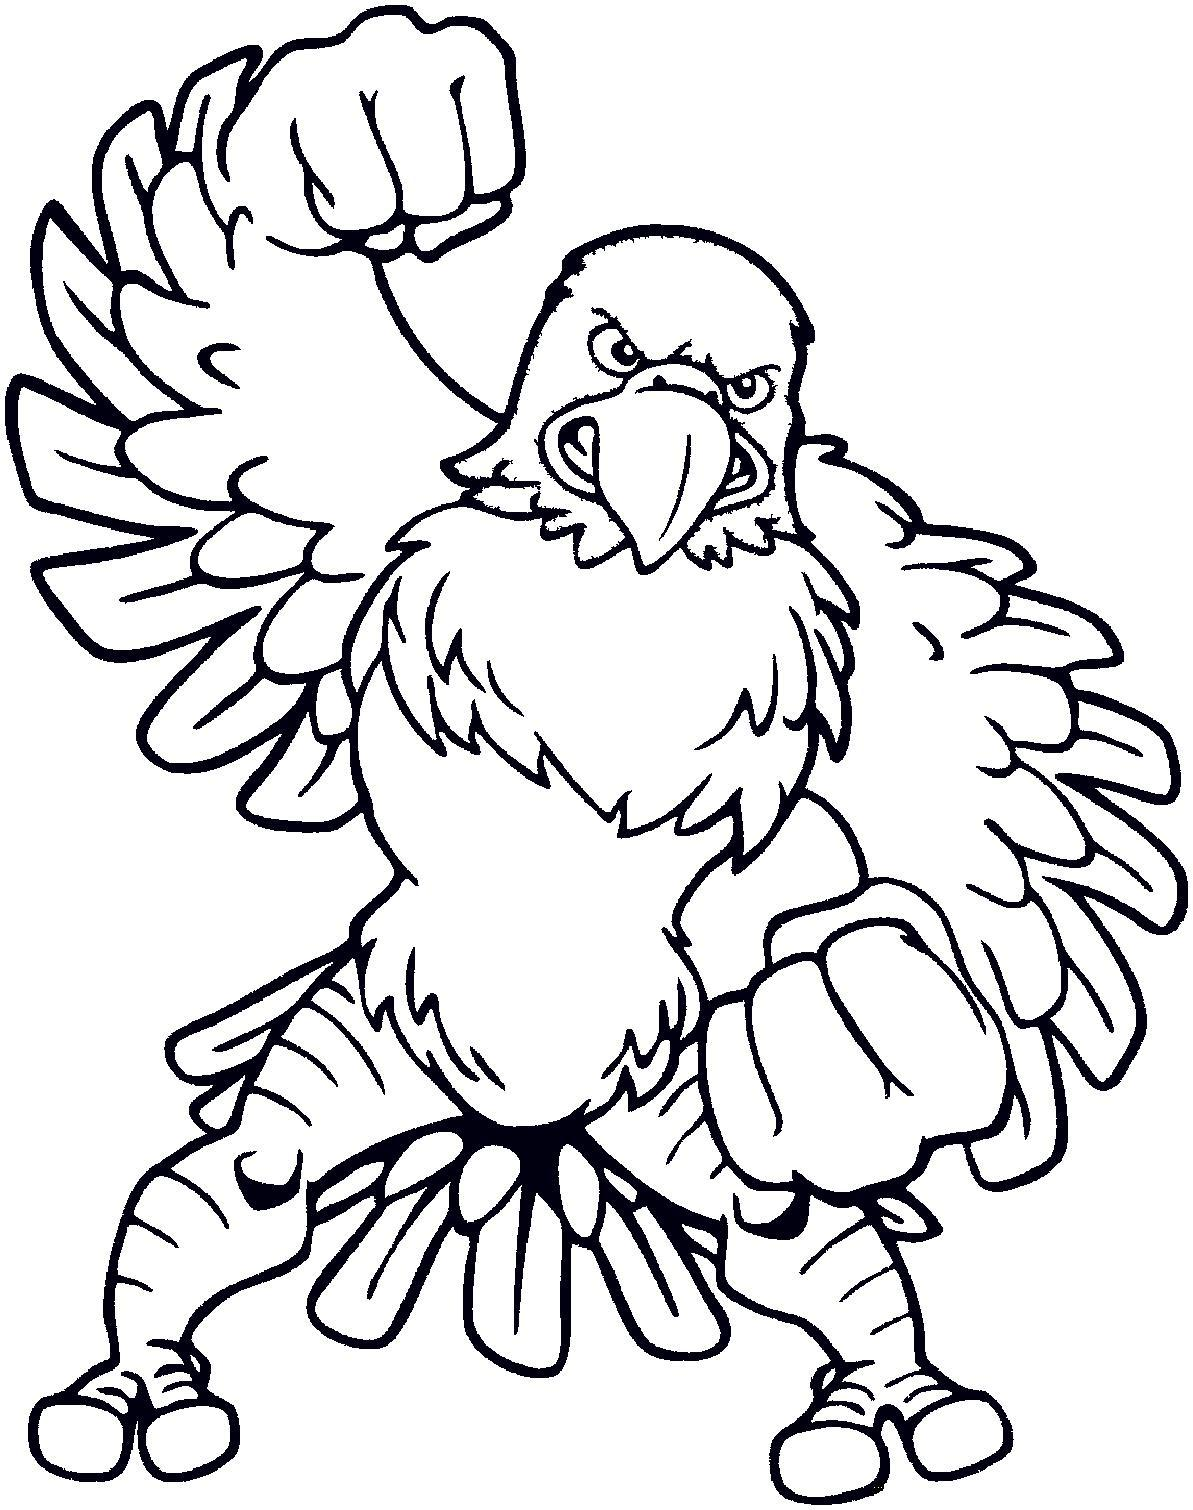 Eagle Coloring The Flying Bald Eagle Coloring Page Image World